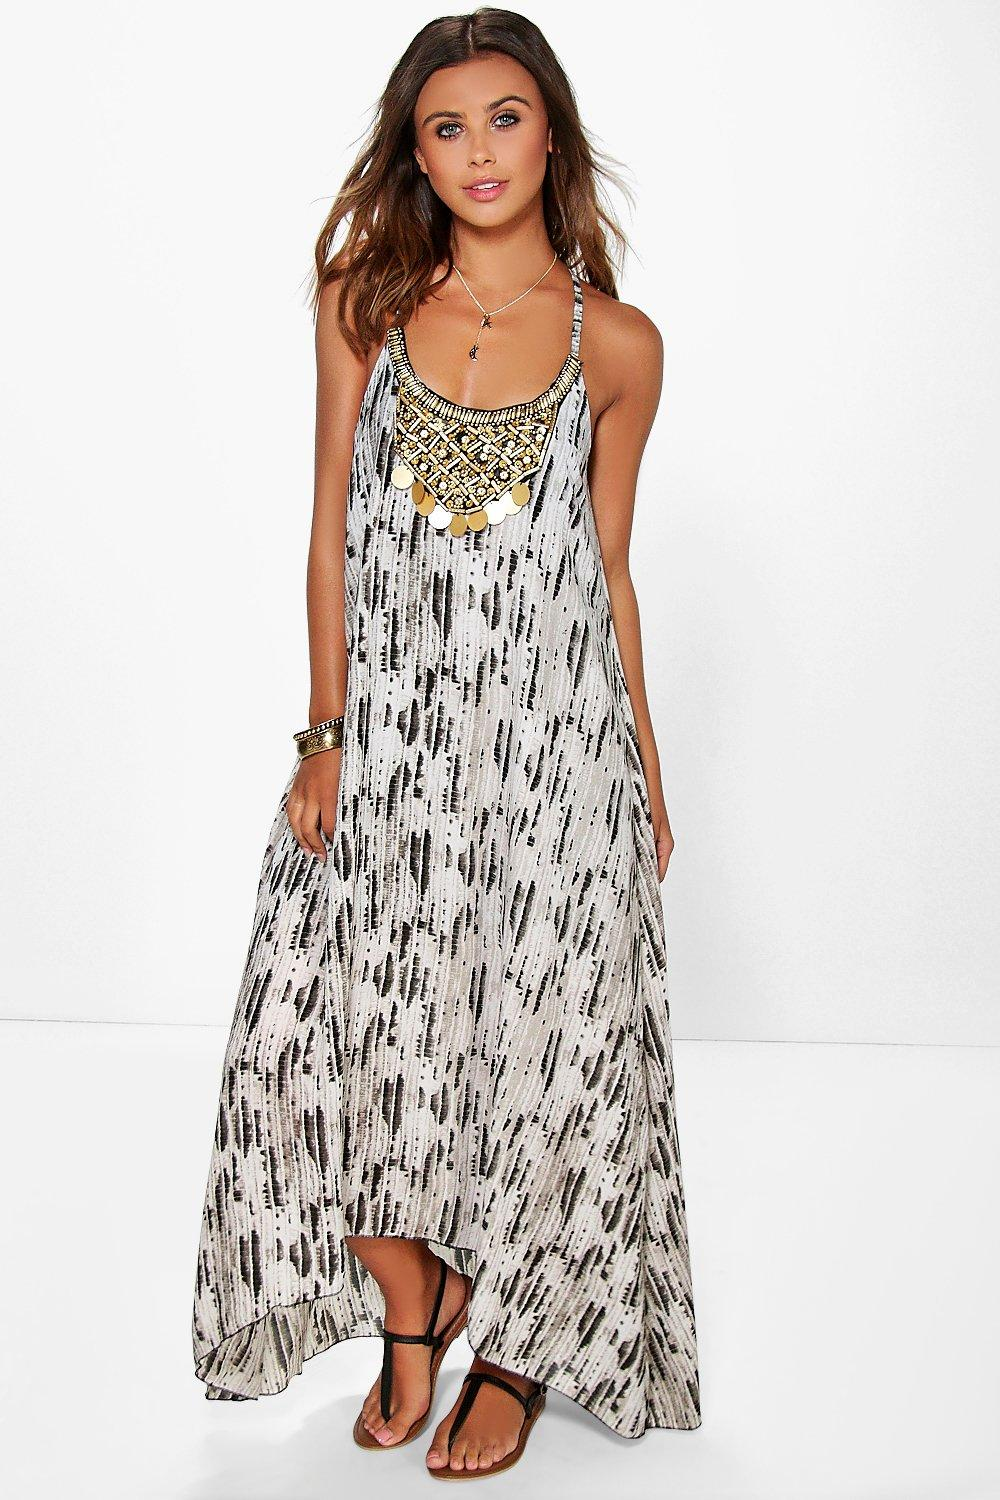 Vera Smudge Print Beaded Trim Maxi Dress